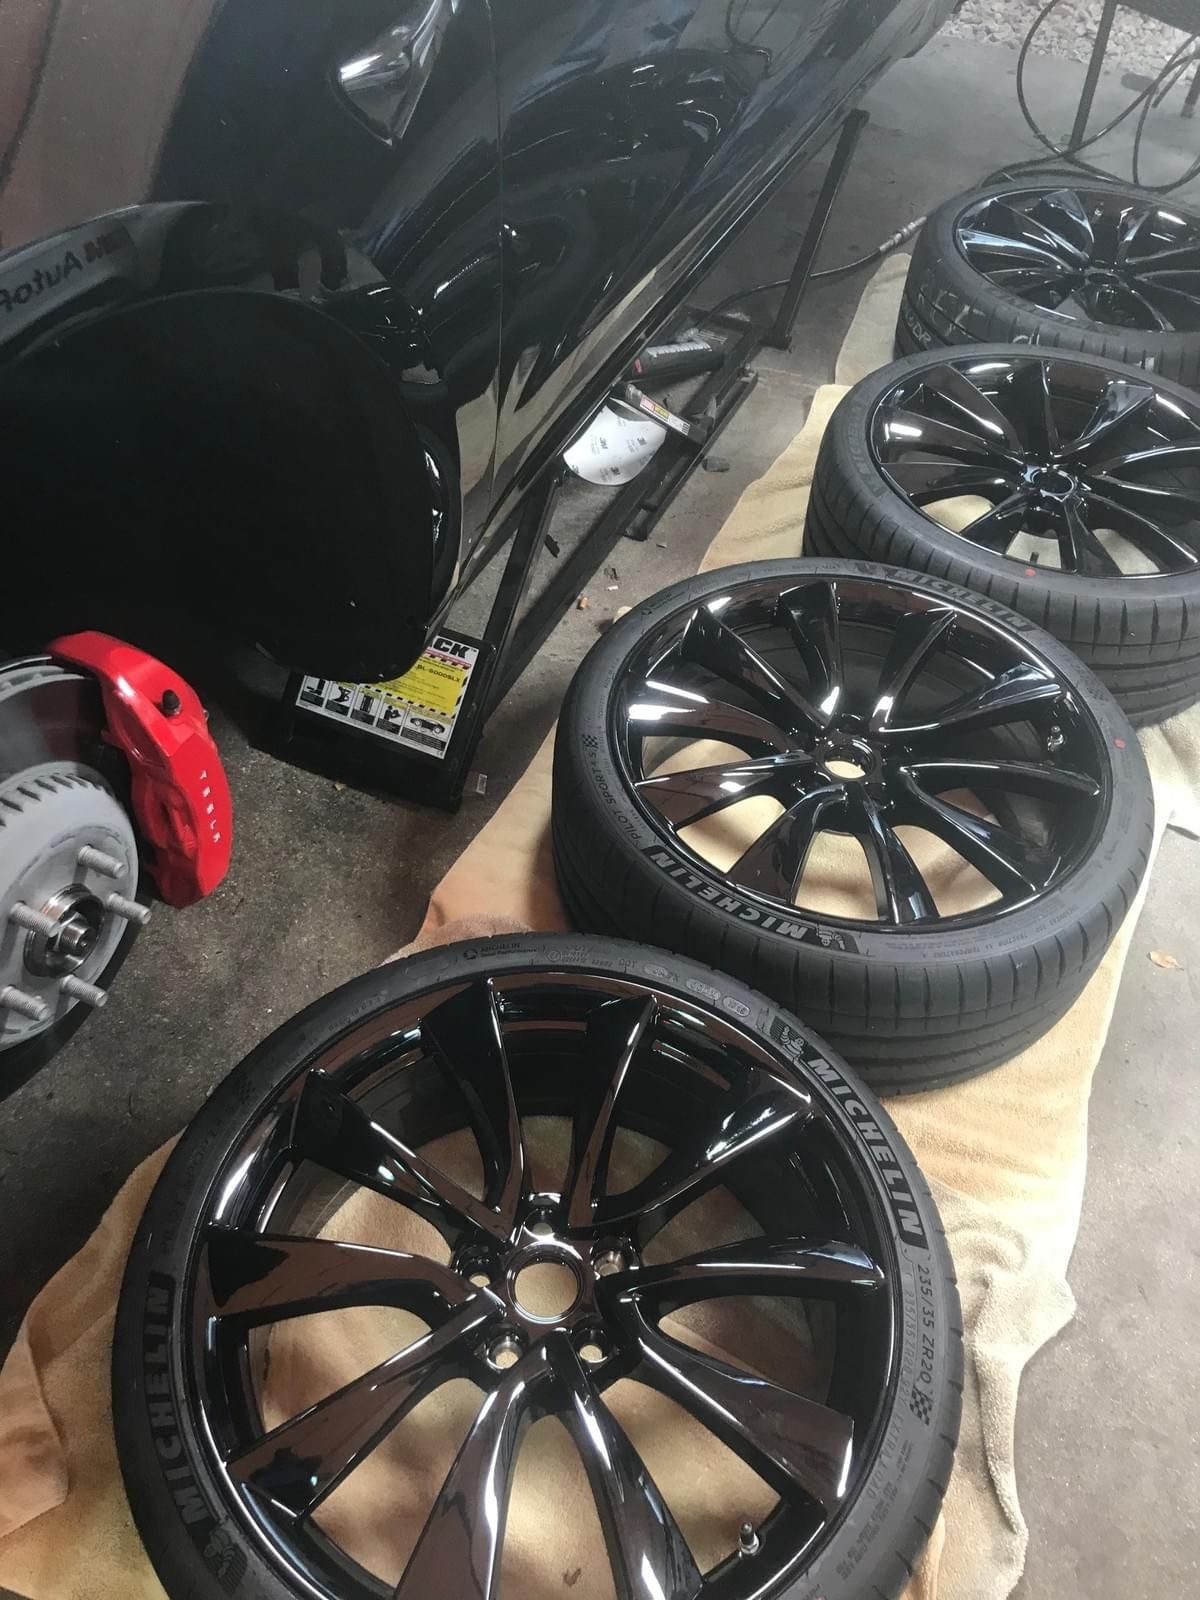 Tesla blackout wheels, Powder coat Tesla wheels, Paint Tesla Rims Black, Paint Tesla Wheels Black